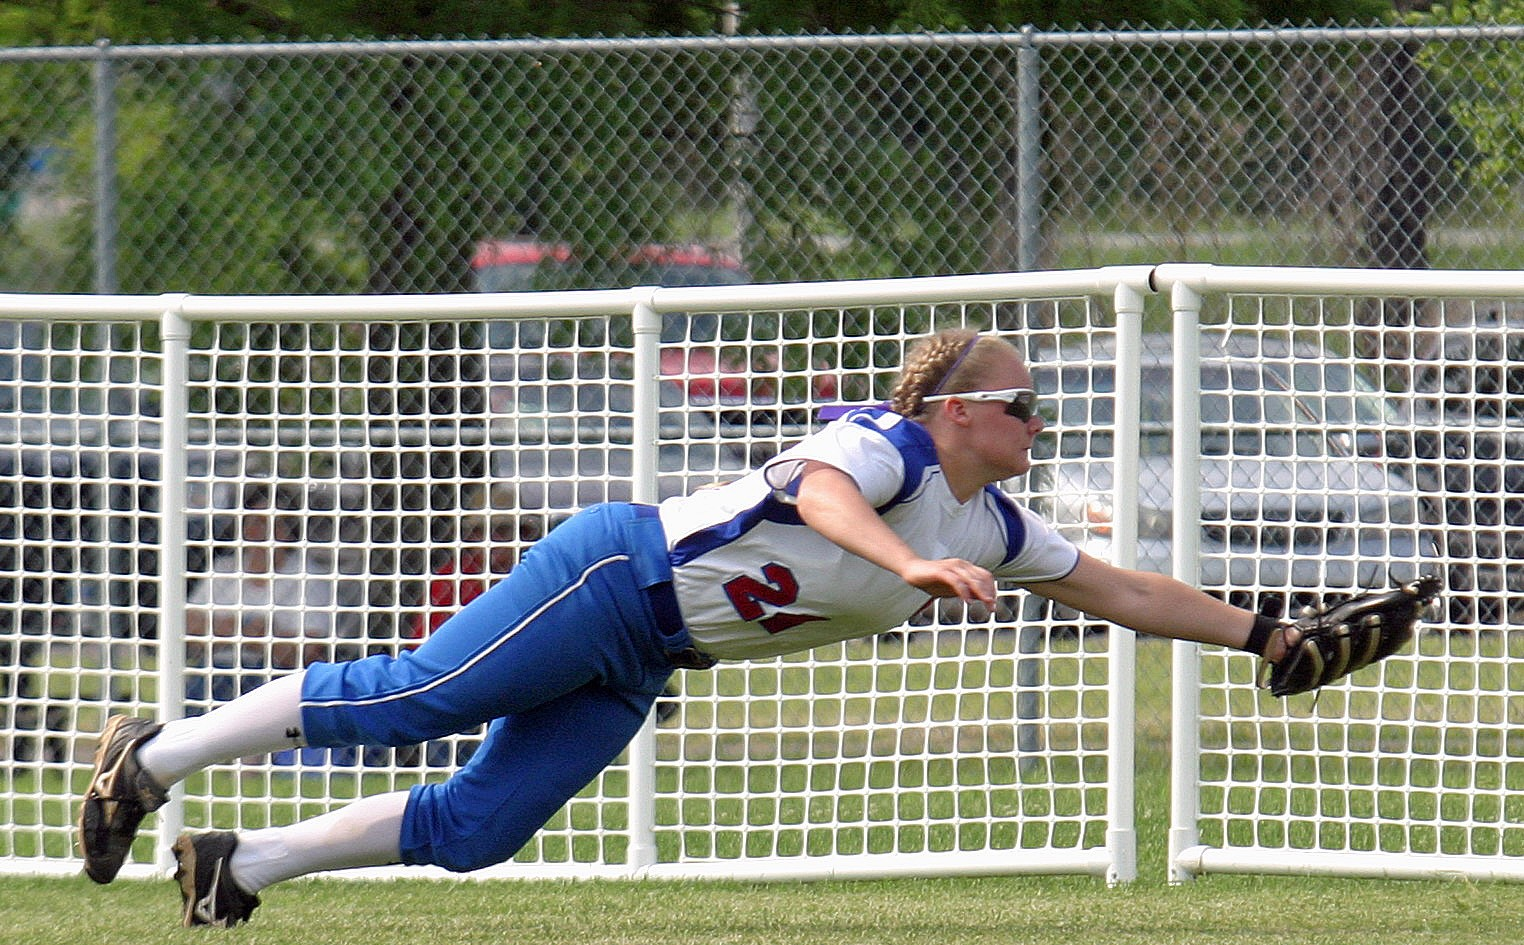 Allison Pedigo at state tournament in 2011.